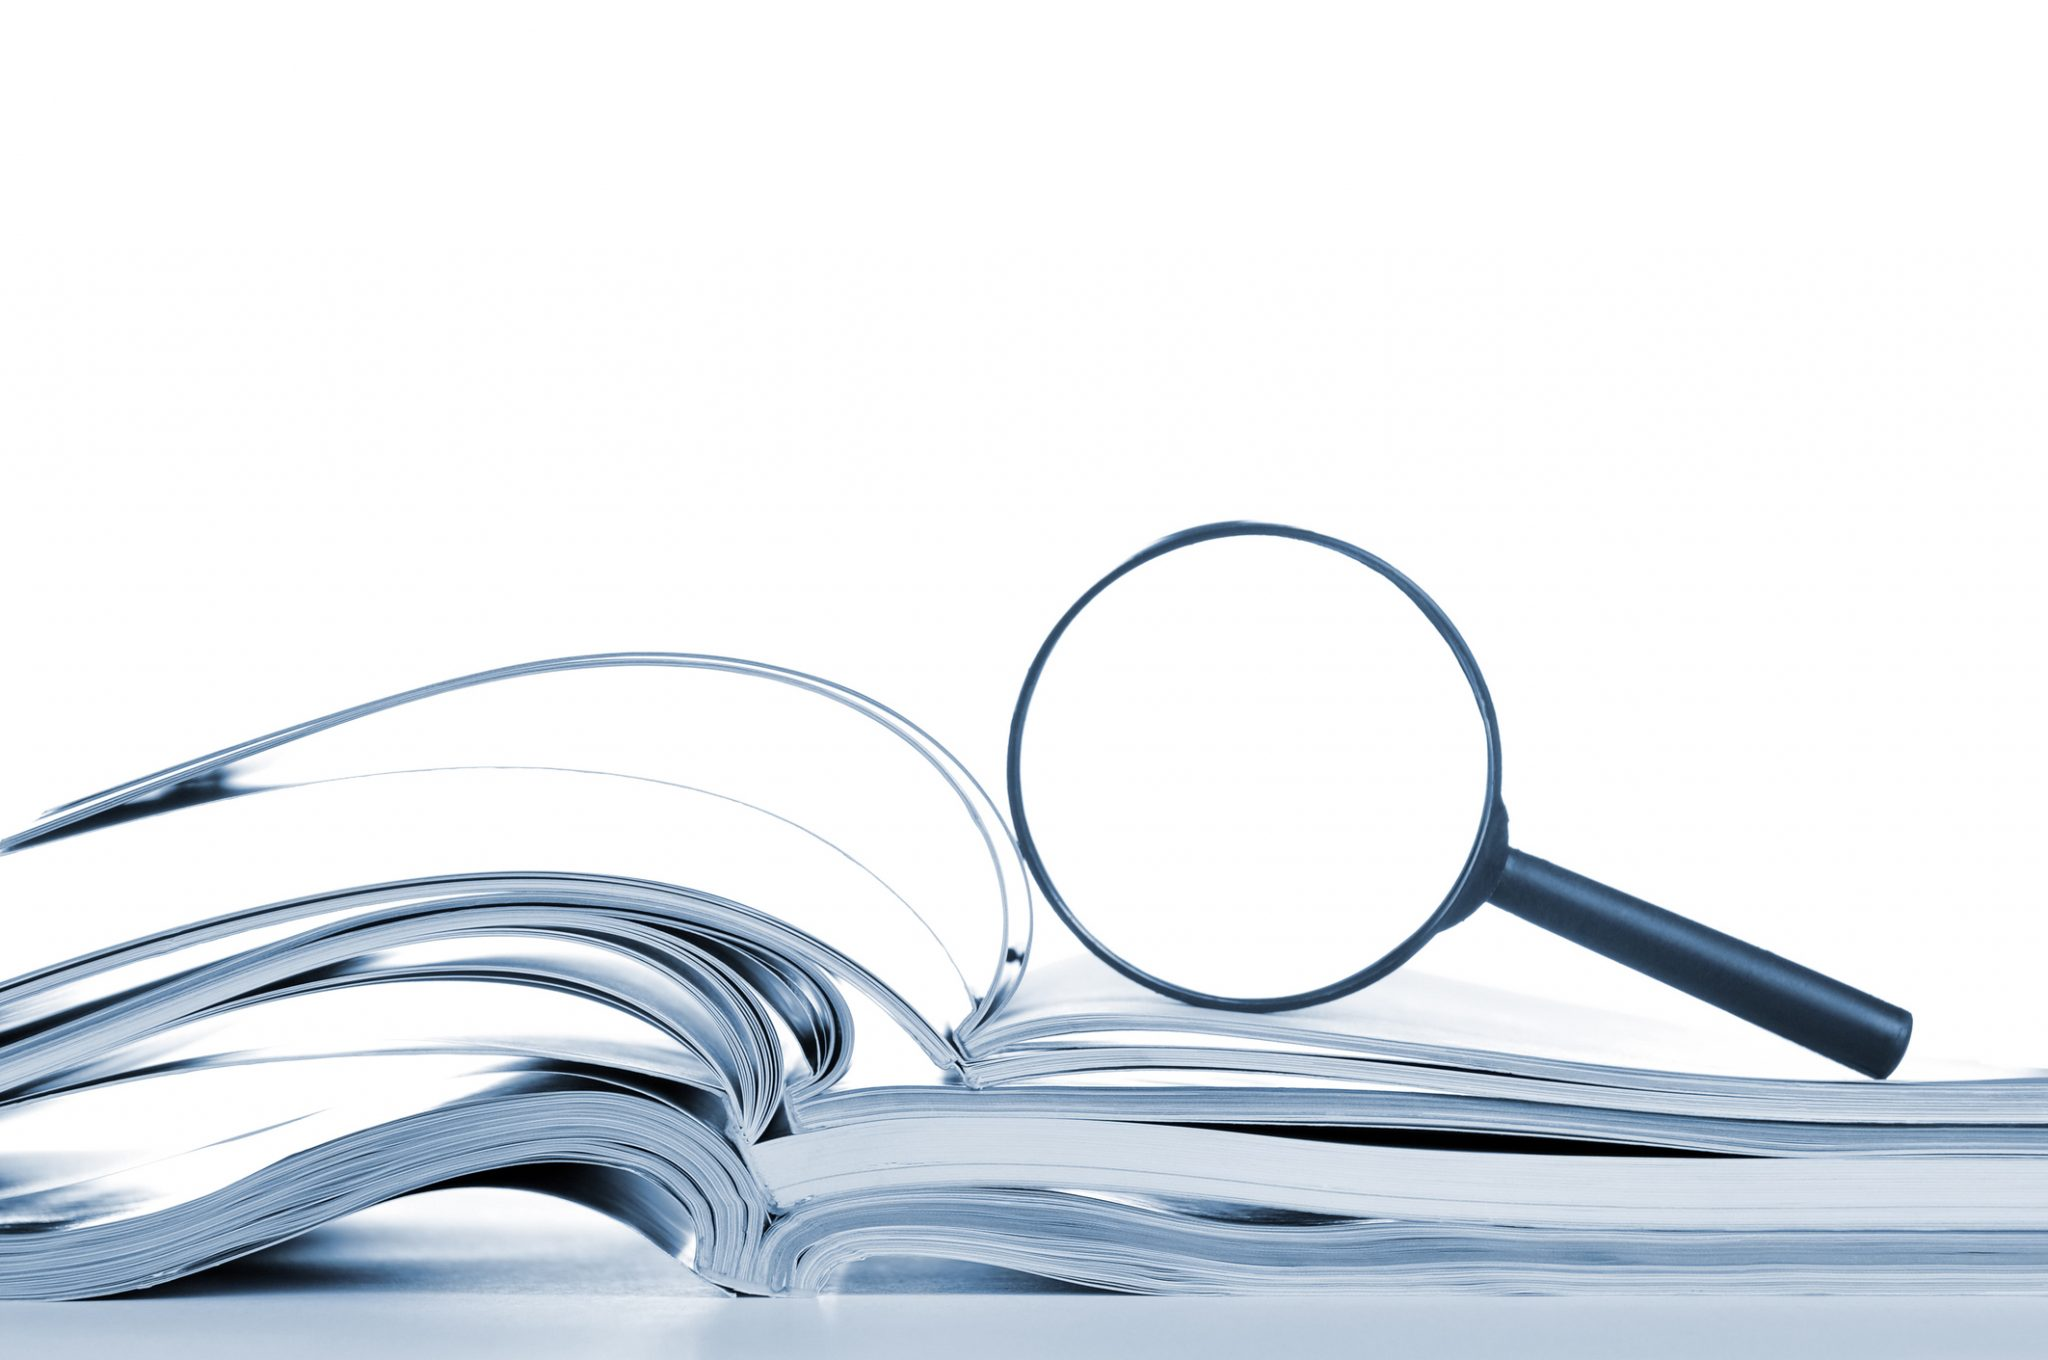 Searching, Opened Magazines And Magnifier Glass, Side View, Isolated White